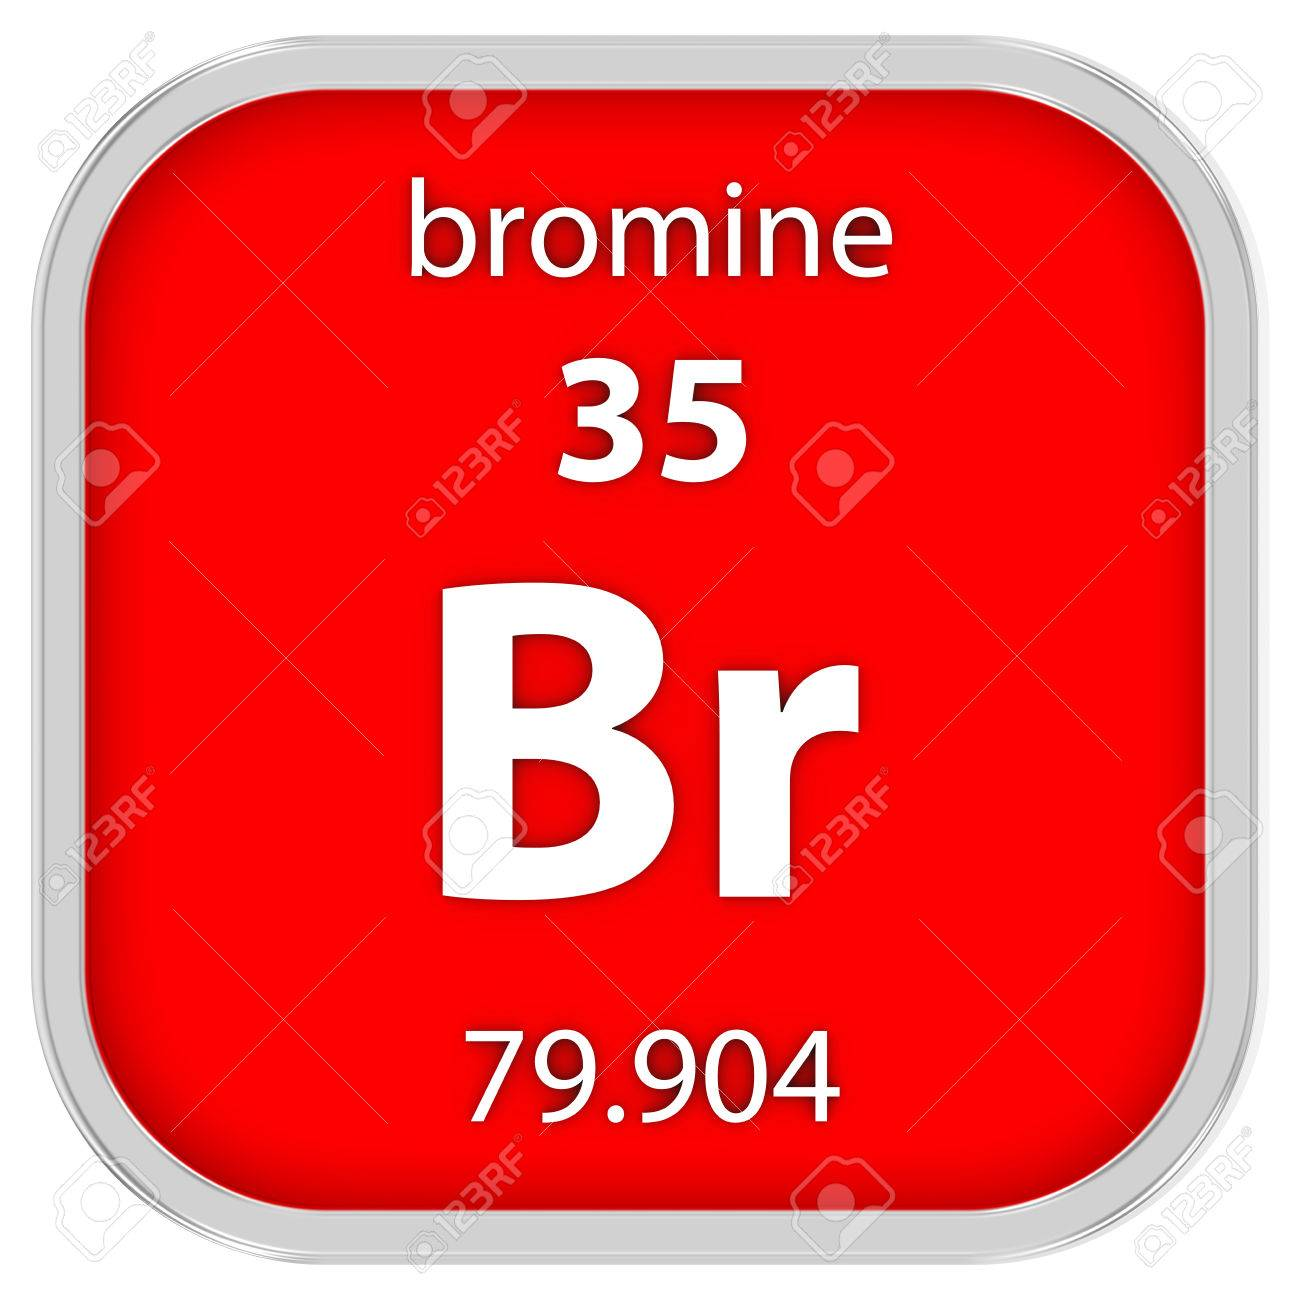 Bromine on the periodic table choice image periodic table images hobart k12 periodic table images periodic table images bromine on the periodic table images periodic table gamestrikefo Image collections